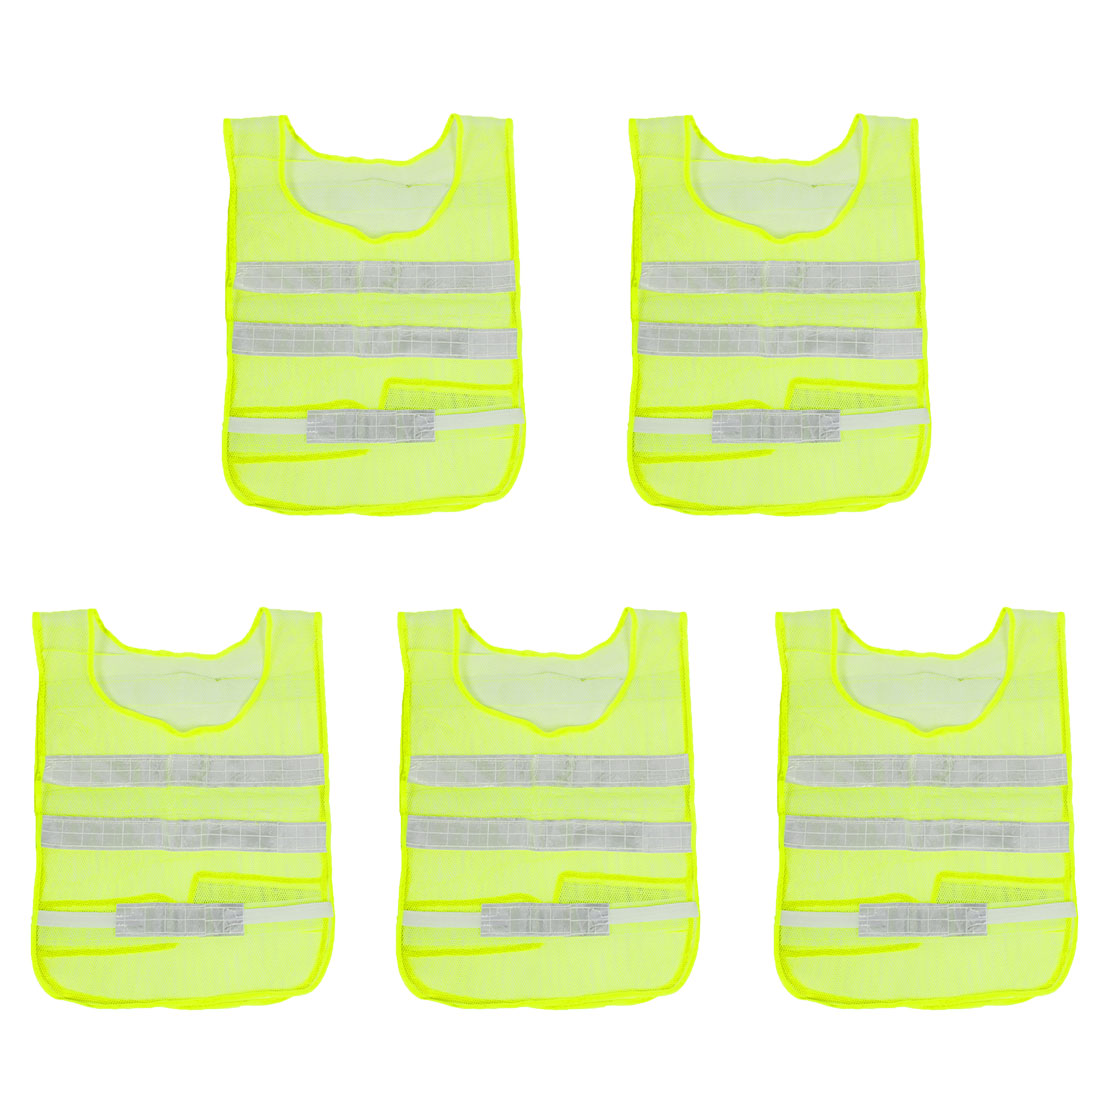 Unique Bargains 5 x High Visibility Traffic Worker Reflective  Vest Yellow Green